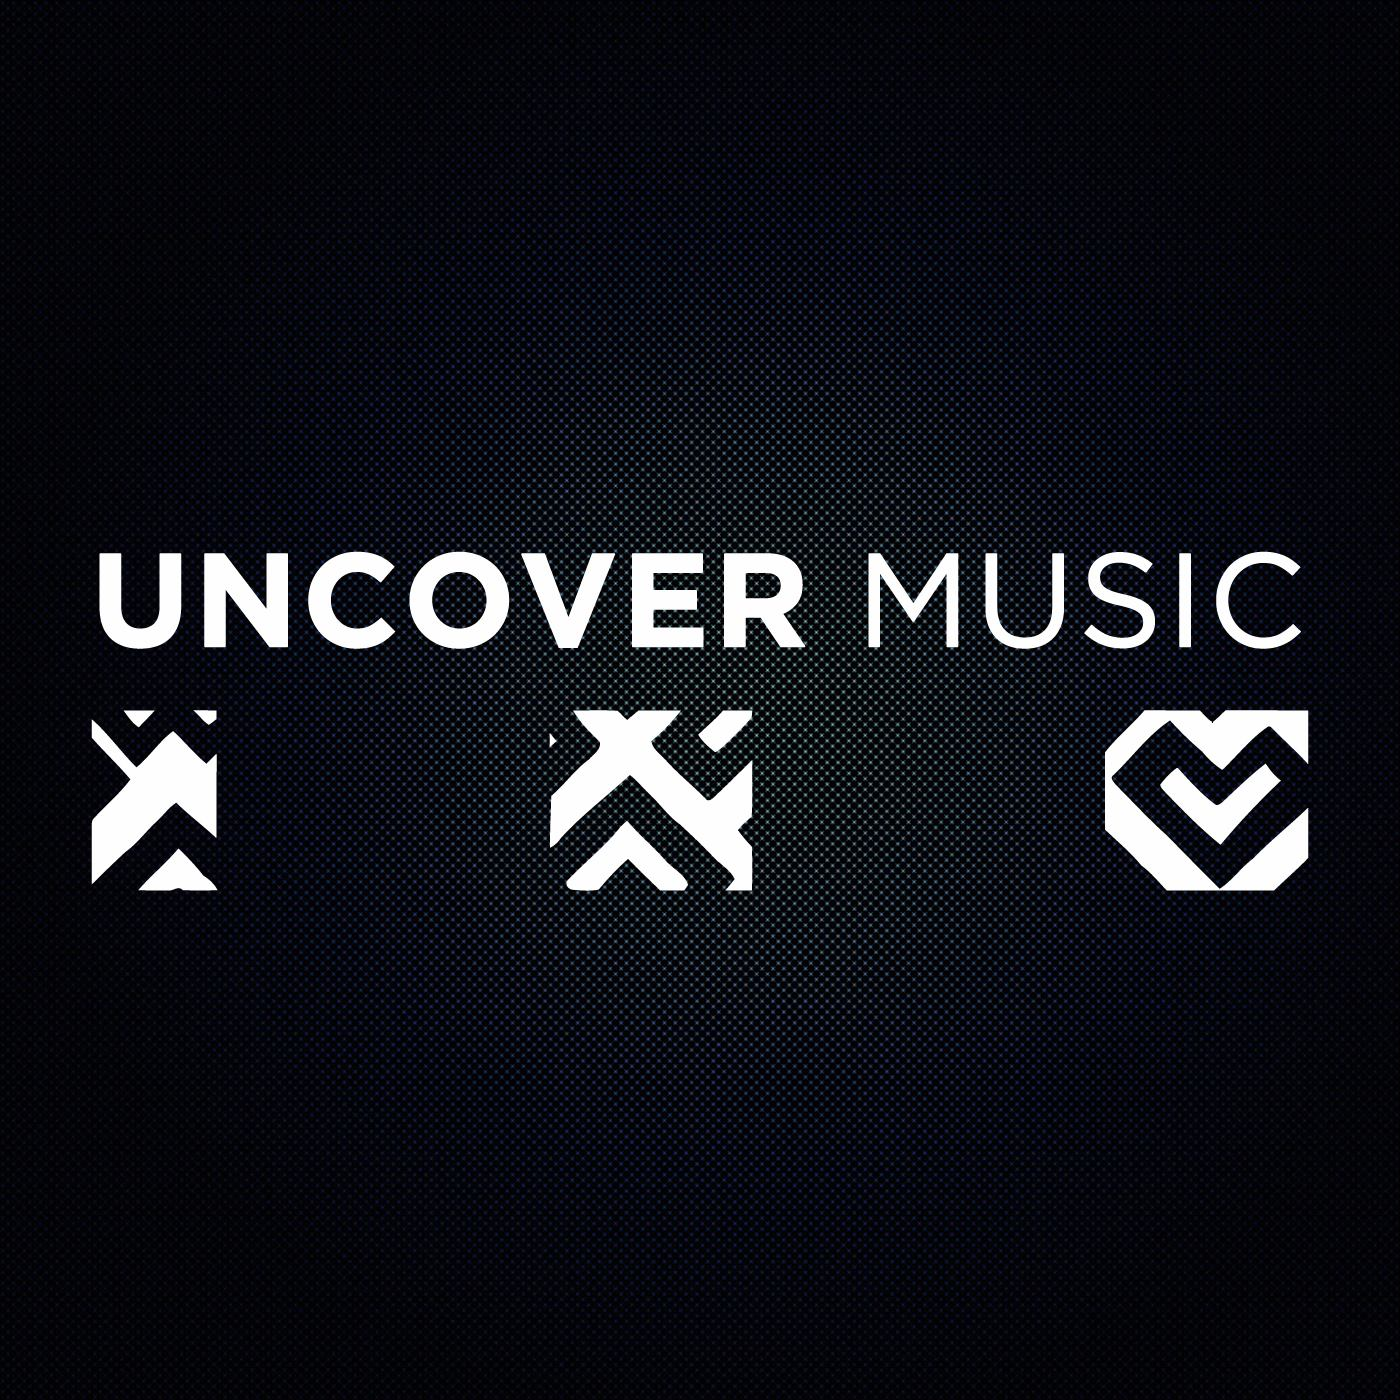 Uncover Music – uncovering great music